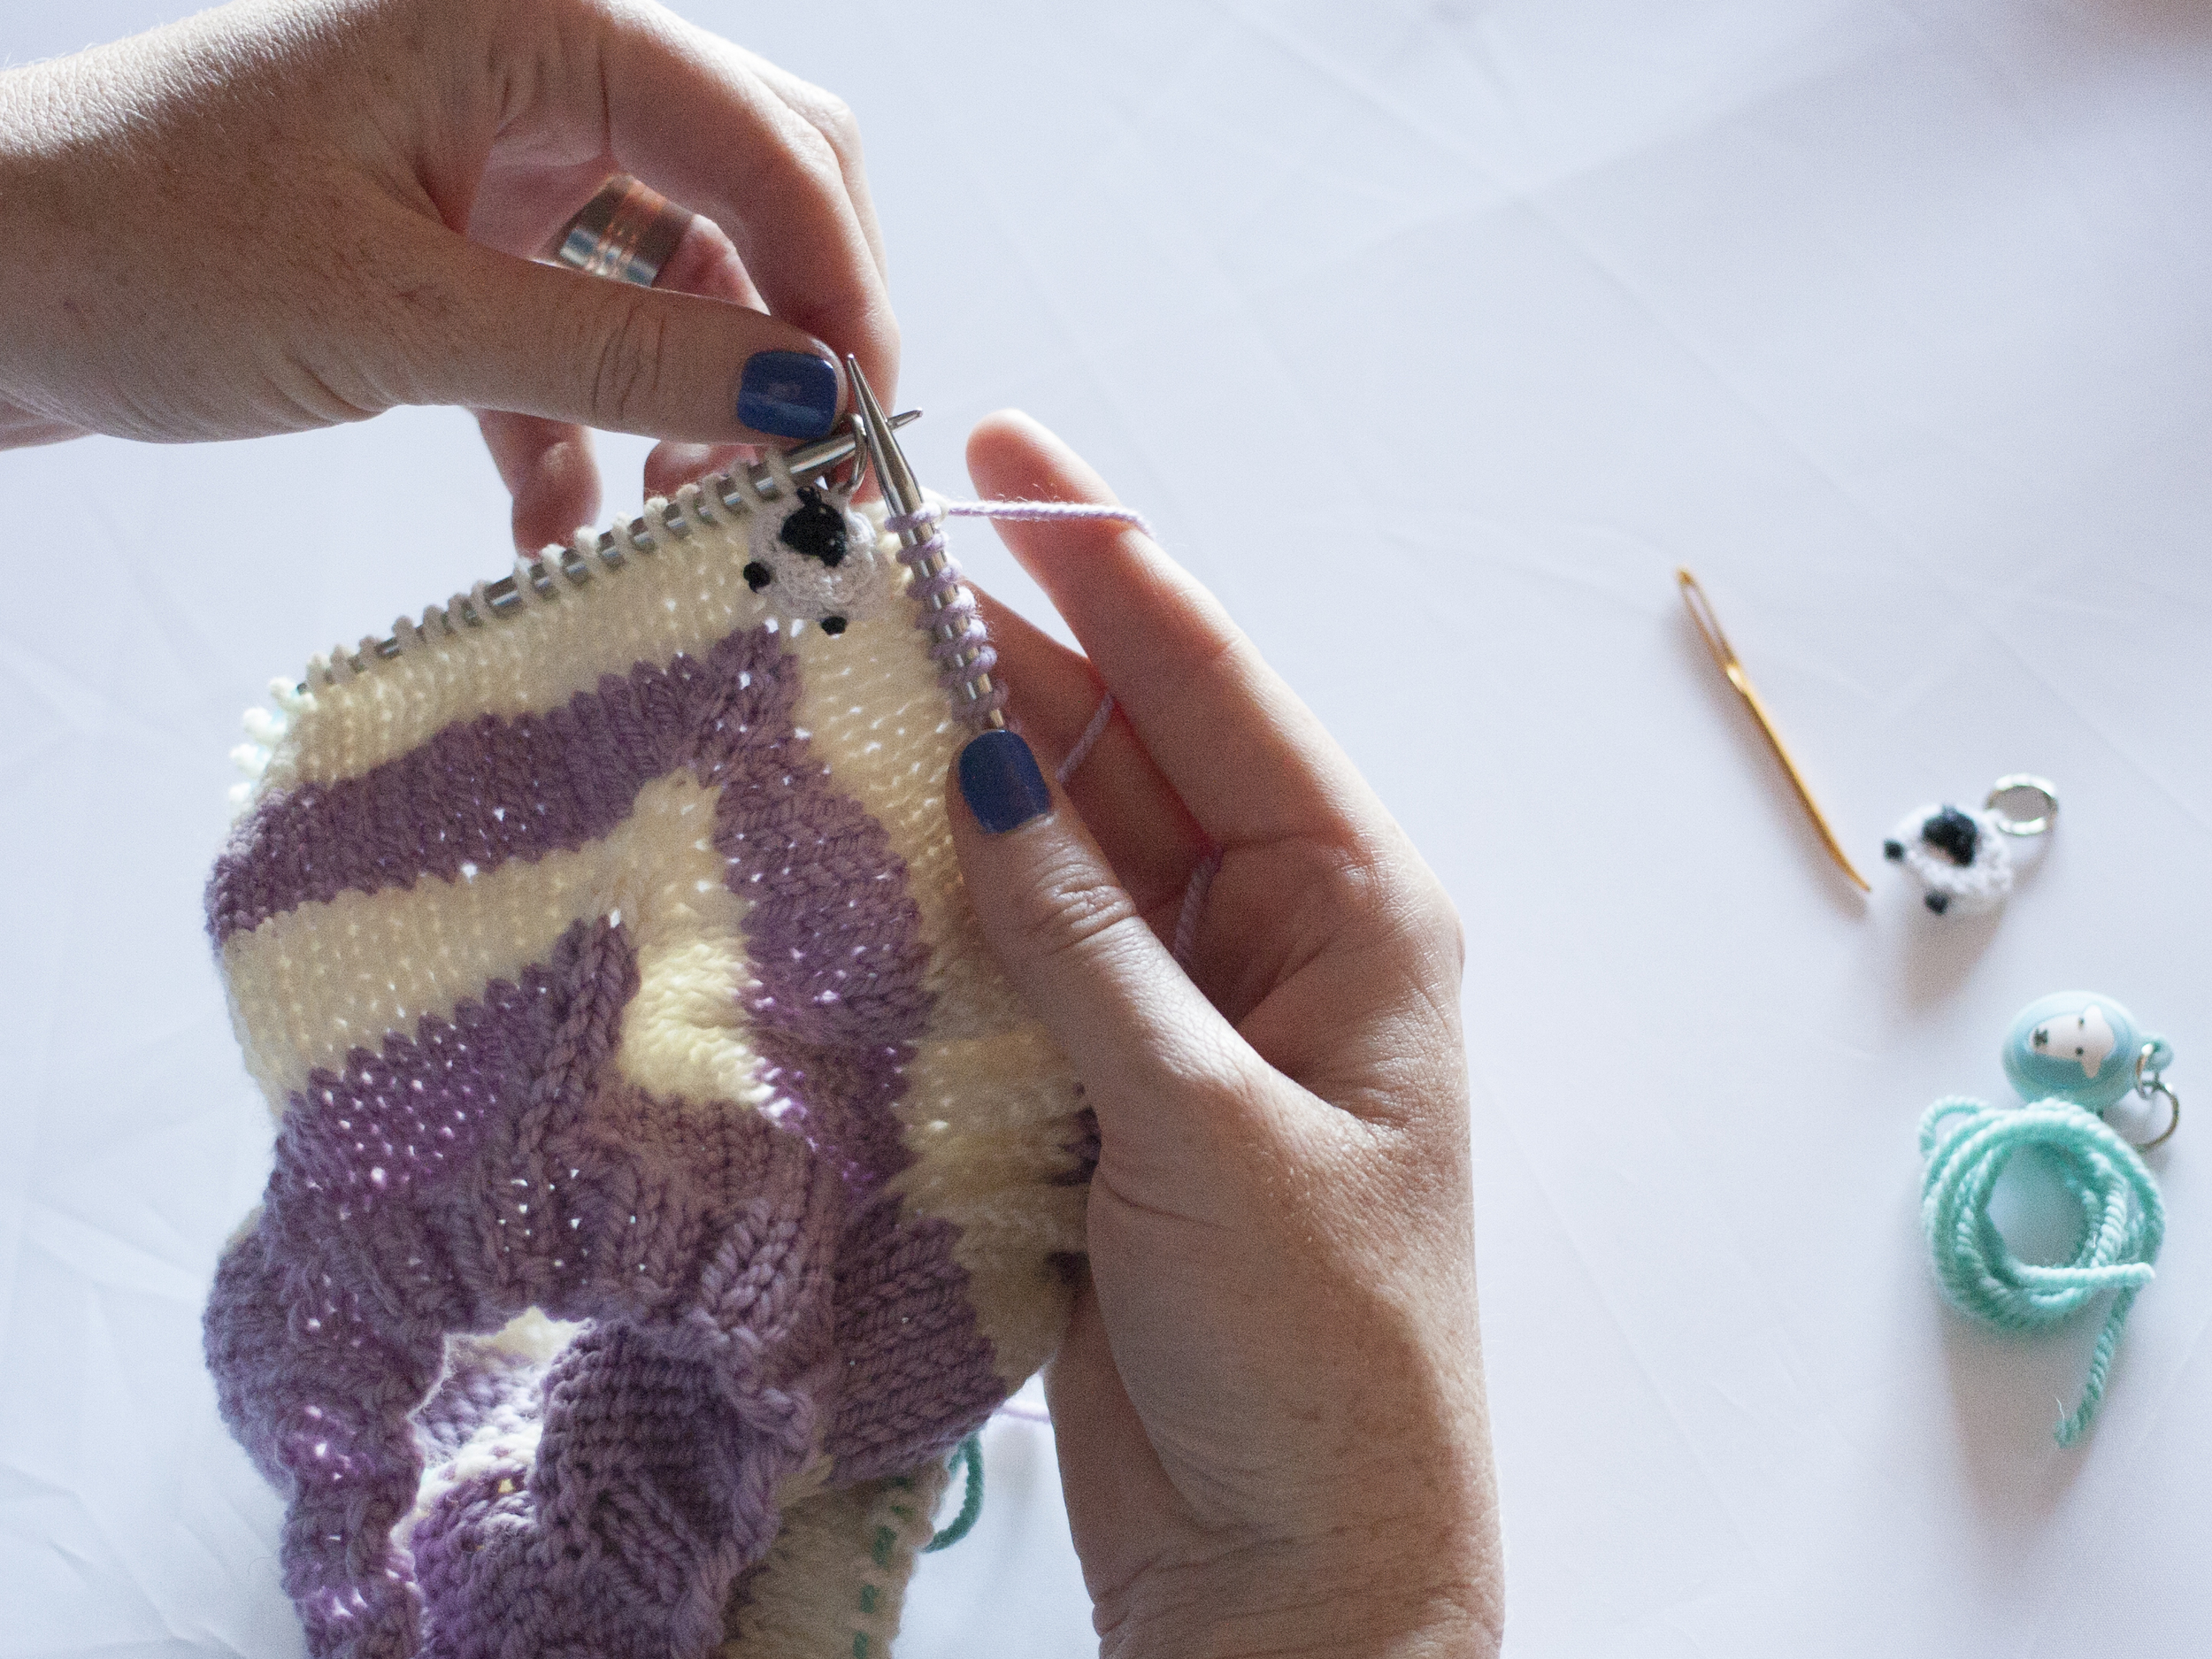 Knit to the next marker